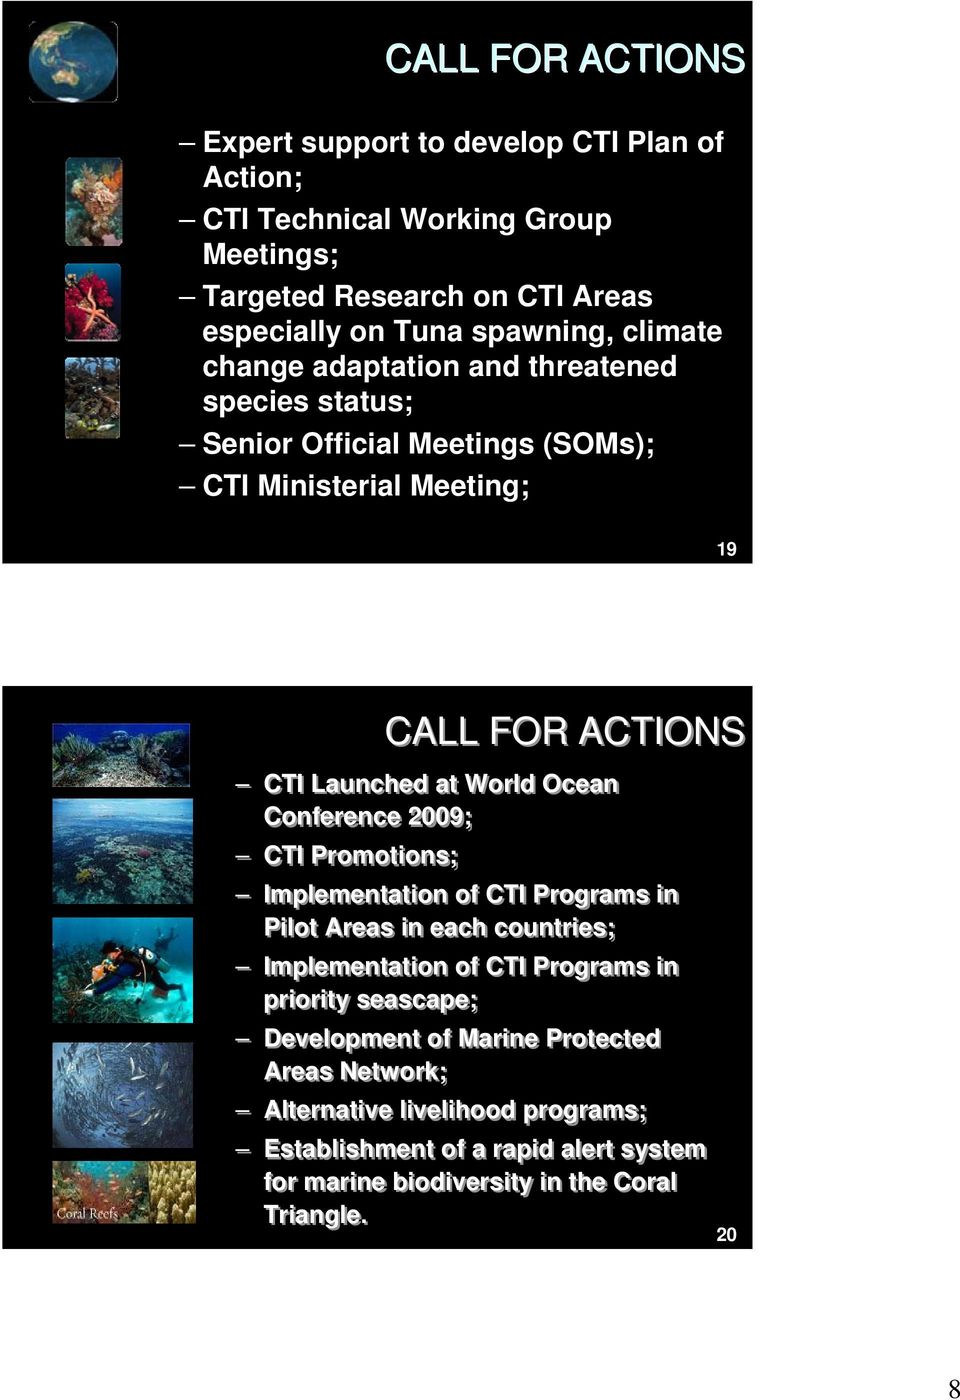 Ocean Conference 2009; CTI Promotions; Implementation of CTI Programs in Pilot Areas in each countries; Implementation of CTI Programs in priority seascape;